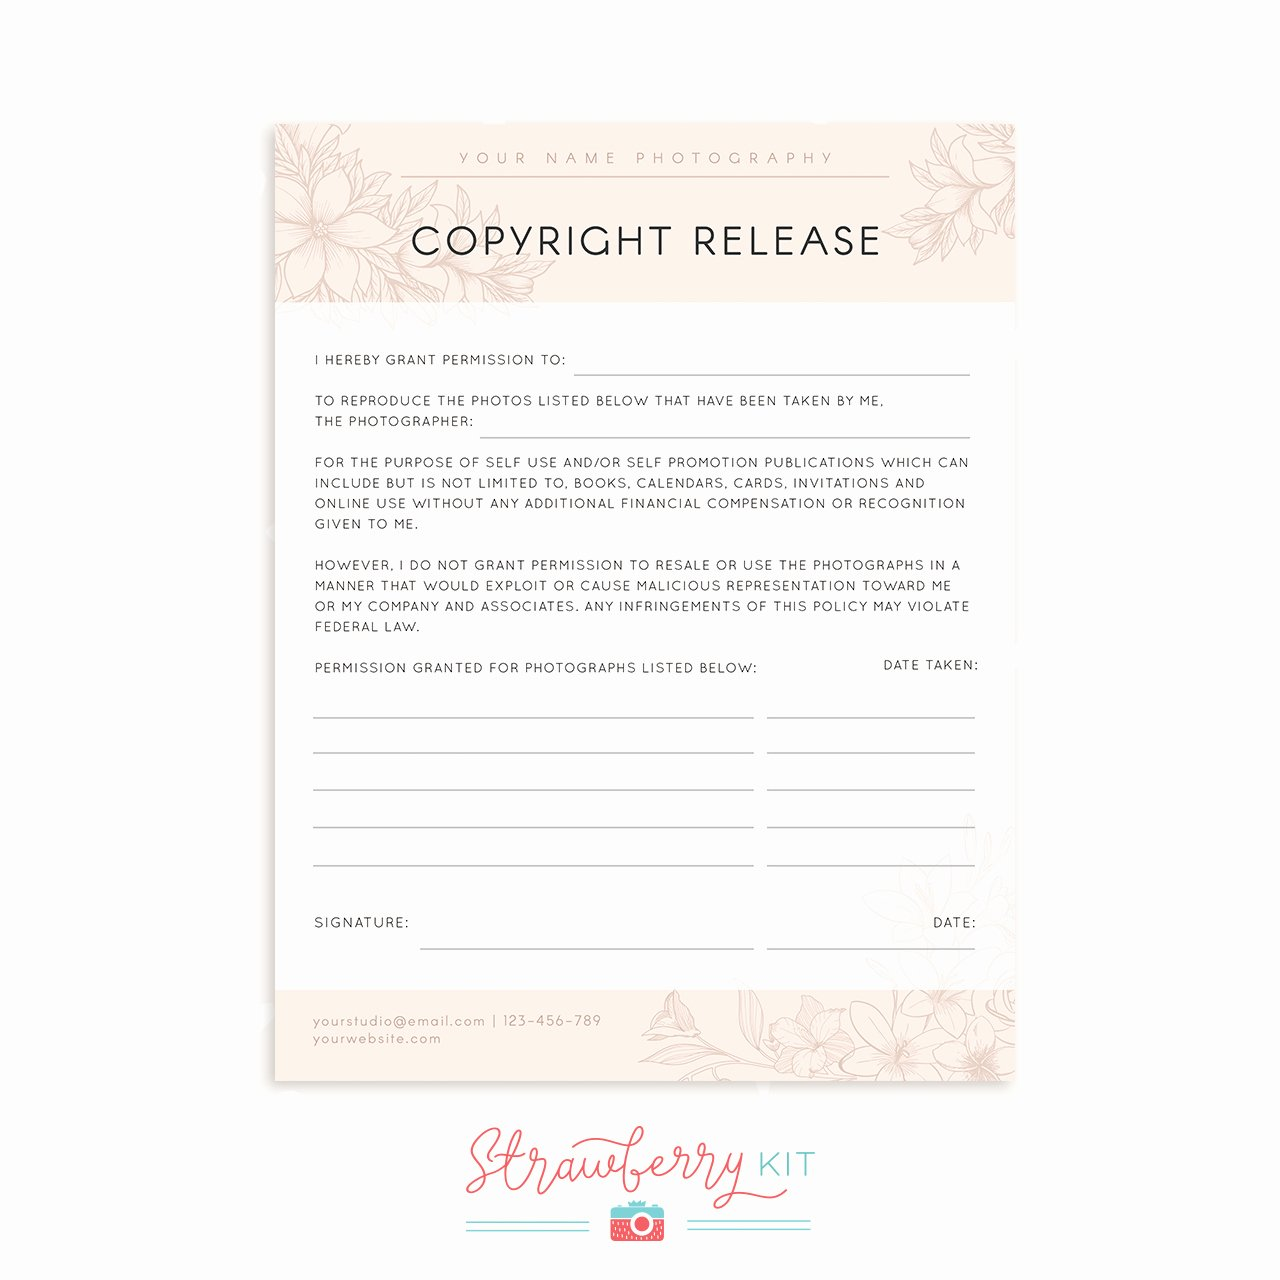 Copyright Release form Template Unique Copyright Release form Template Strawberry Kit